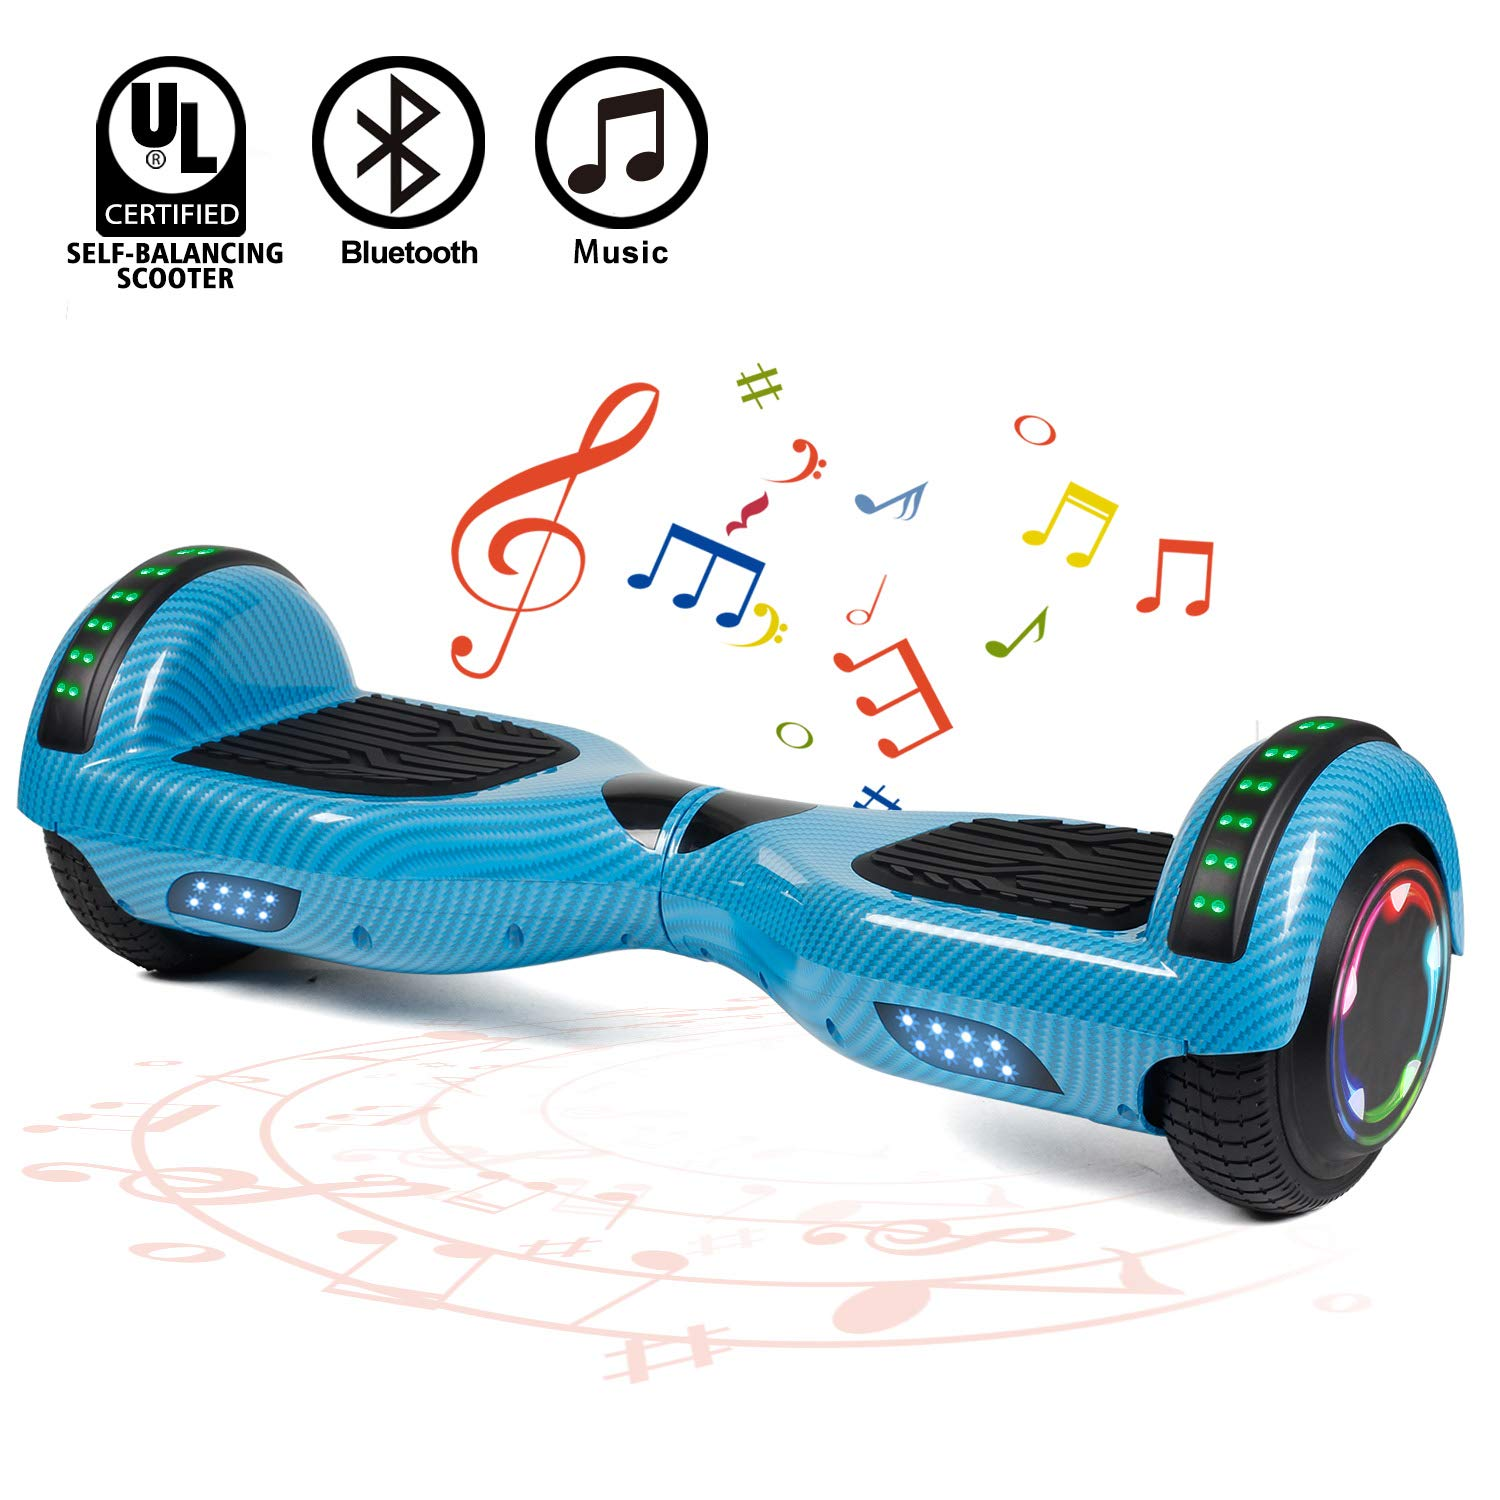 FLYING-ANT Hoverboard UL 2272 Certified 6.5'' Two-Wheel Bluetooth Self Balancing Electric Scooter with LED Light Flash Lights Wheels Blue (Free Carry Bag)